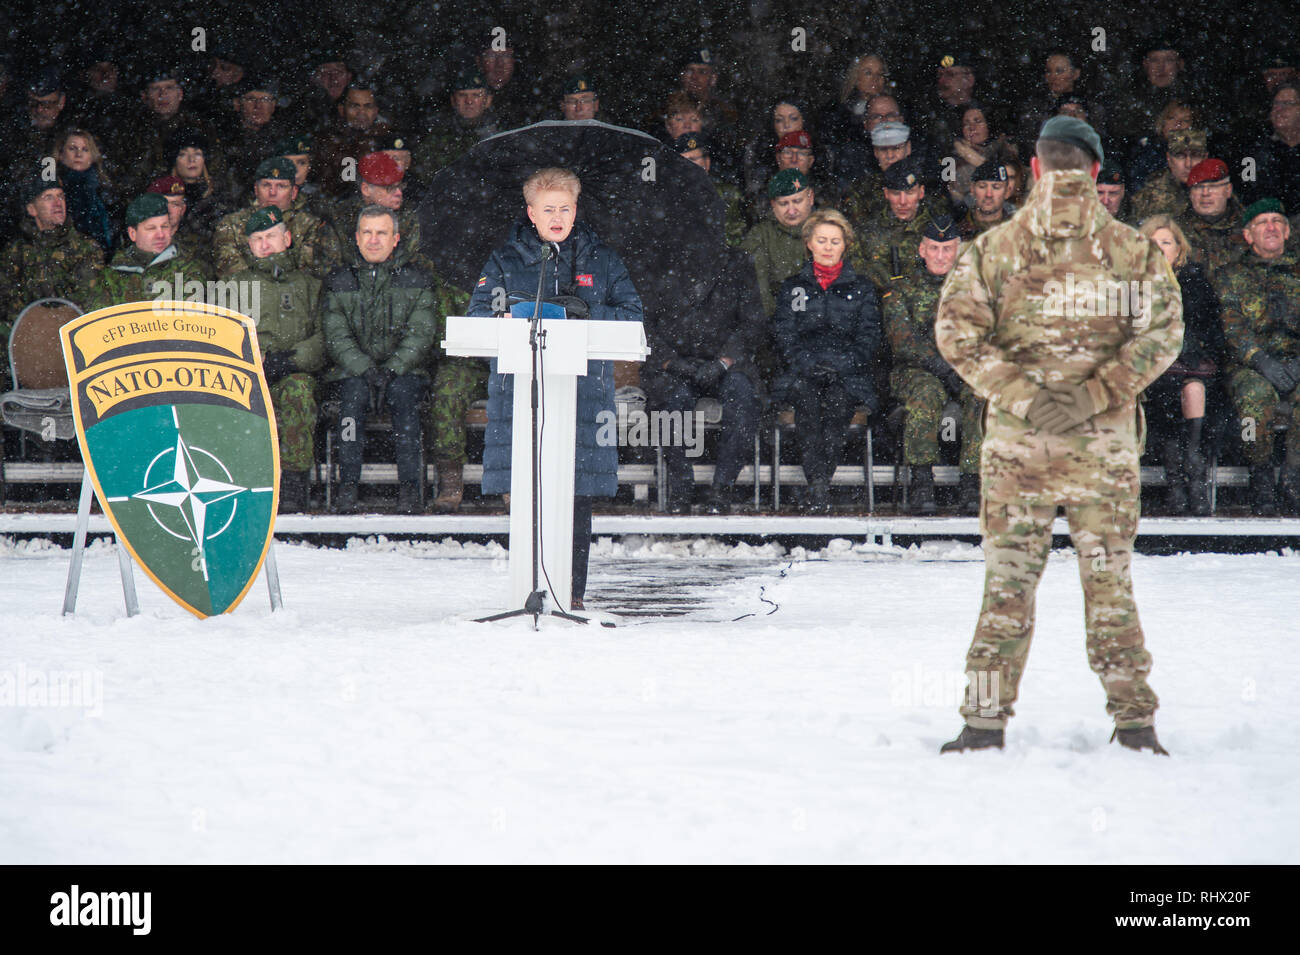 Rukla, Lithuania. 04th Feb, 2019. Dalia Grybauskaite, President of the Republic of Lithuania, speaks at the handover appeal in the barracks. The new commander is Bundeswehr Lieutenant Colonel Papenbroock. Credit: Arne Bänsch/dpa/Alamy Live News - Stock Image